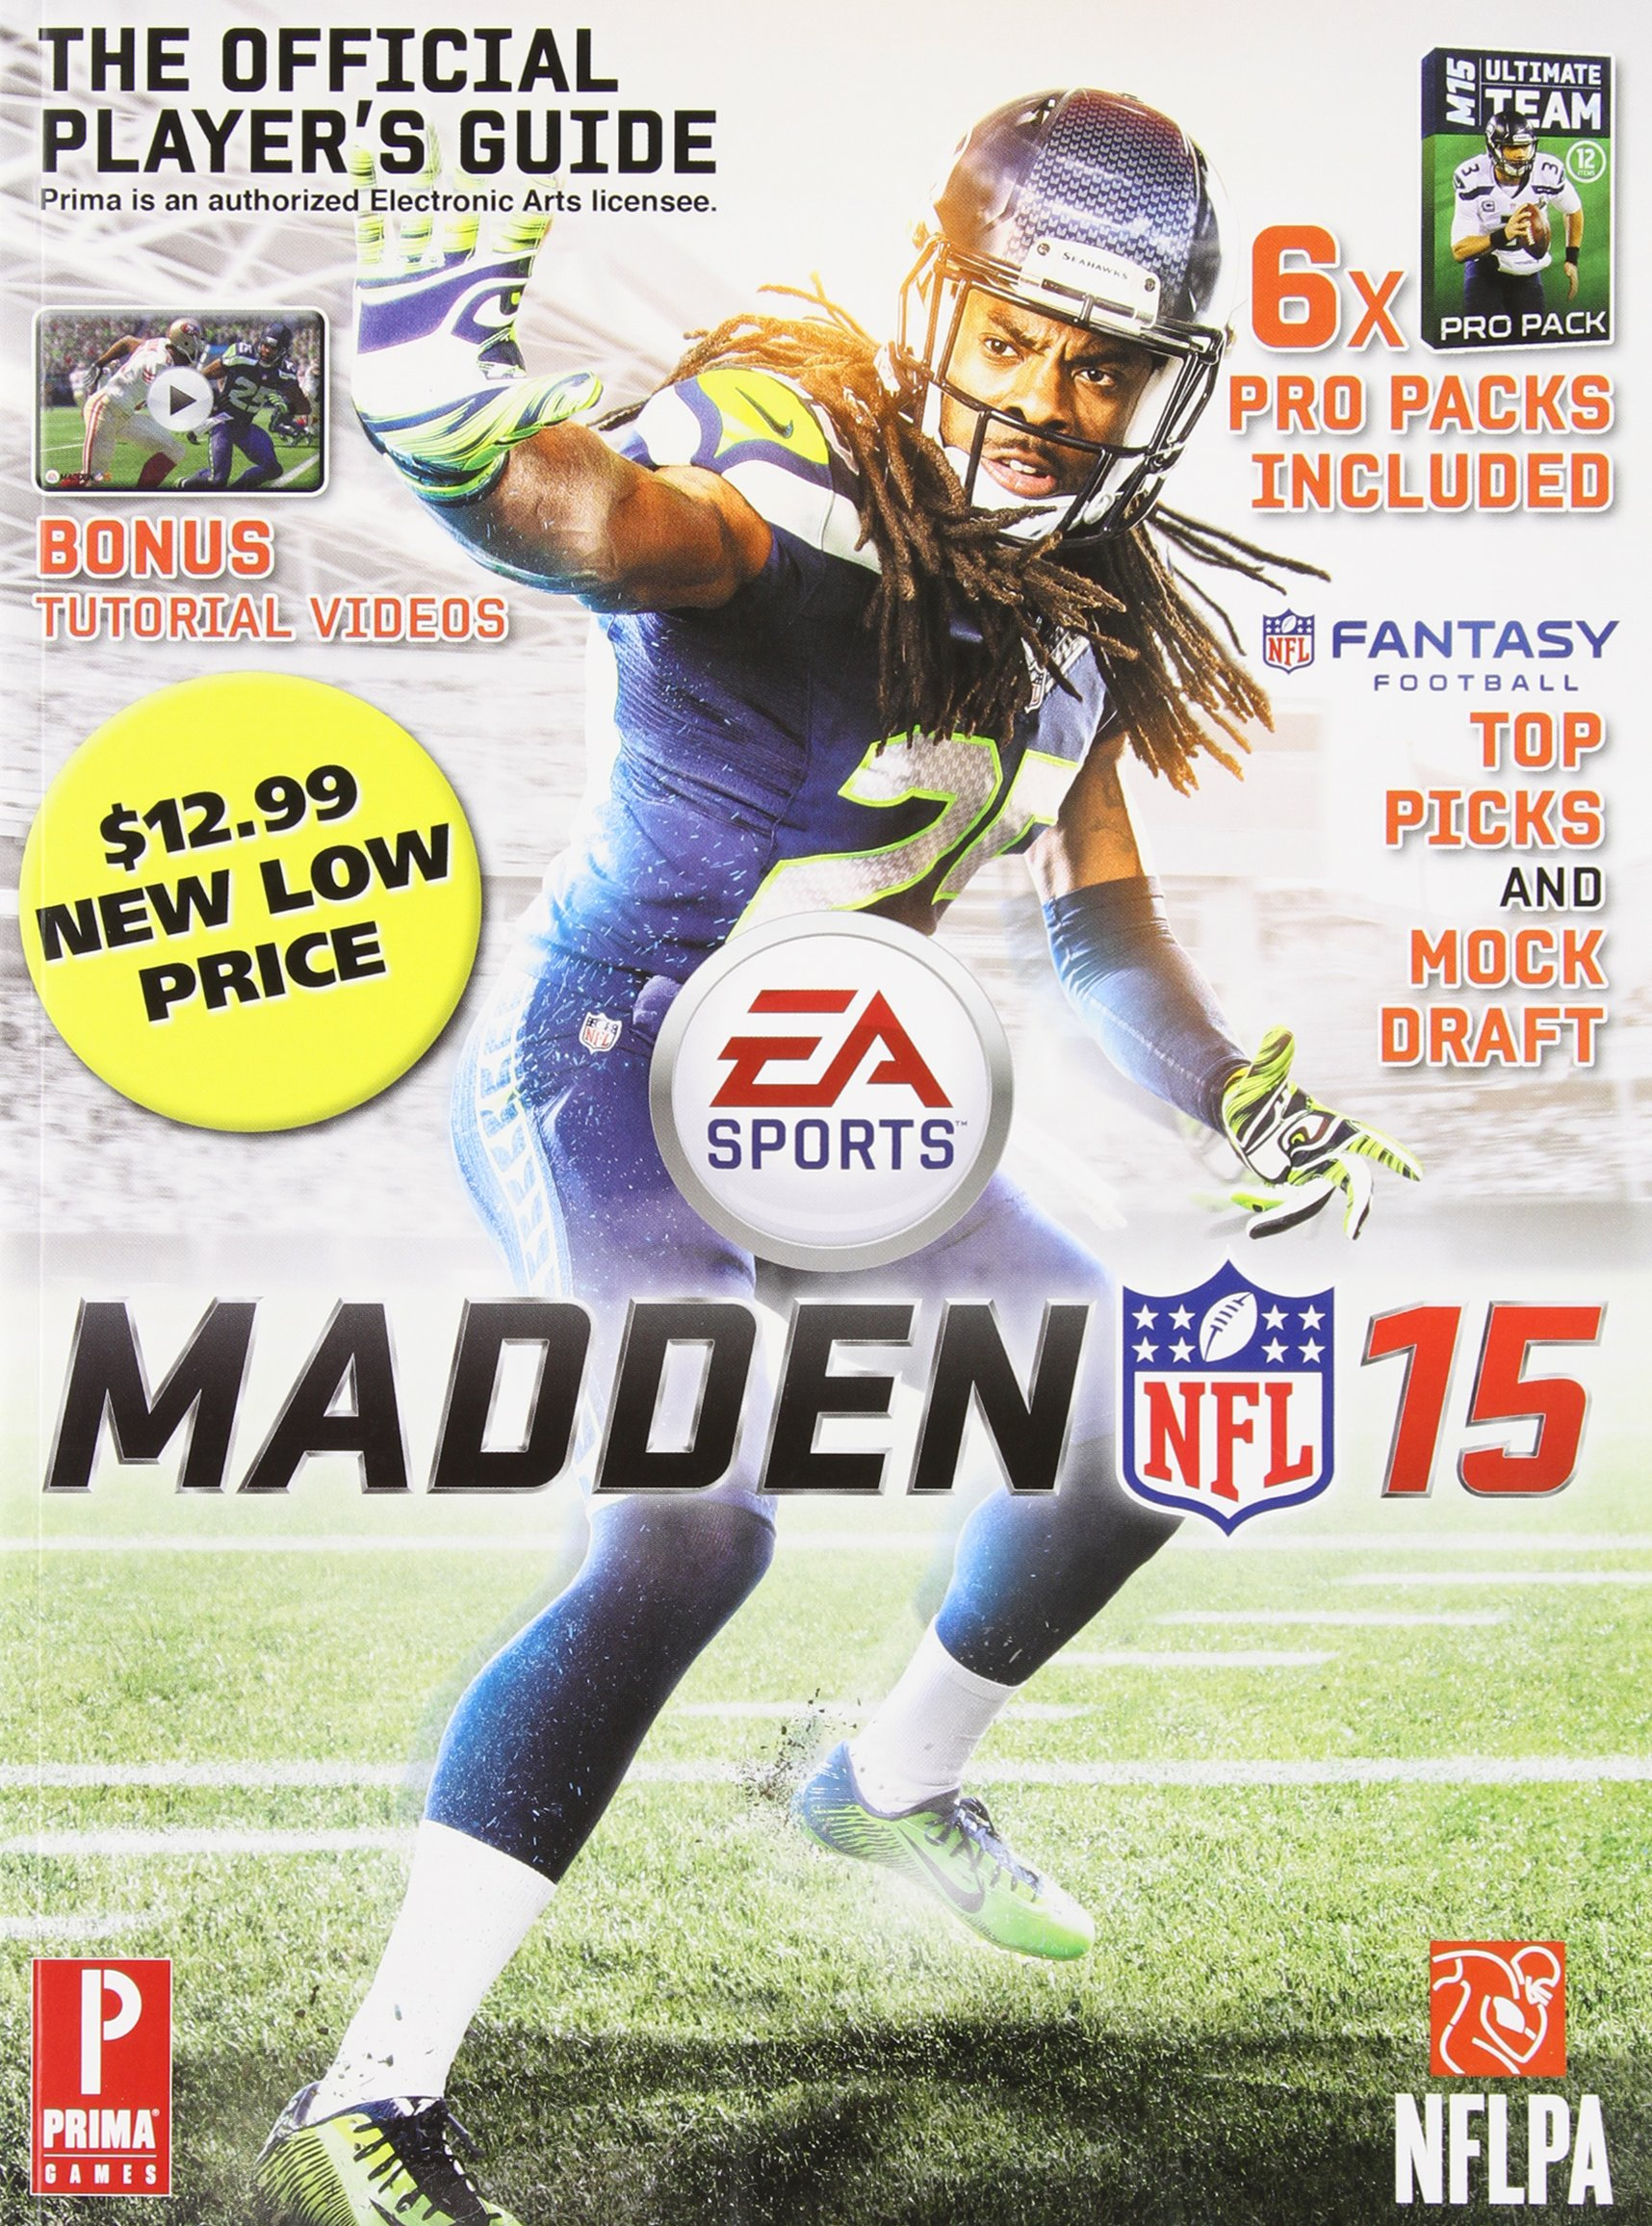 Madden NFL 15: The Official Player's Guide: Gamer Media Inc: 9780804162555:  Amazon.com: Books